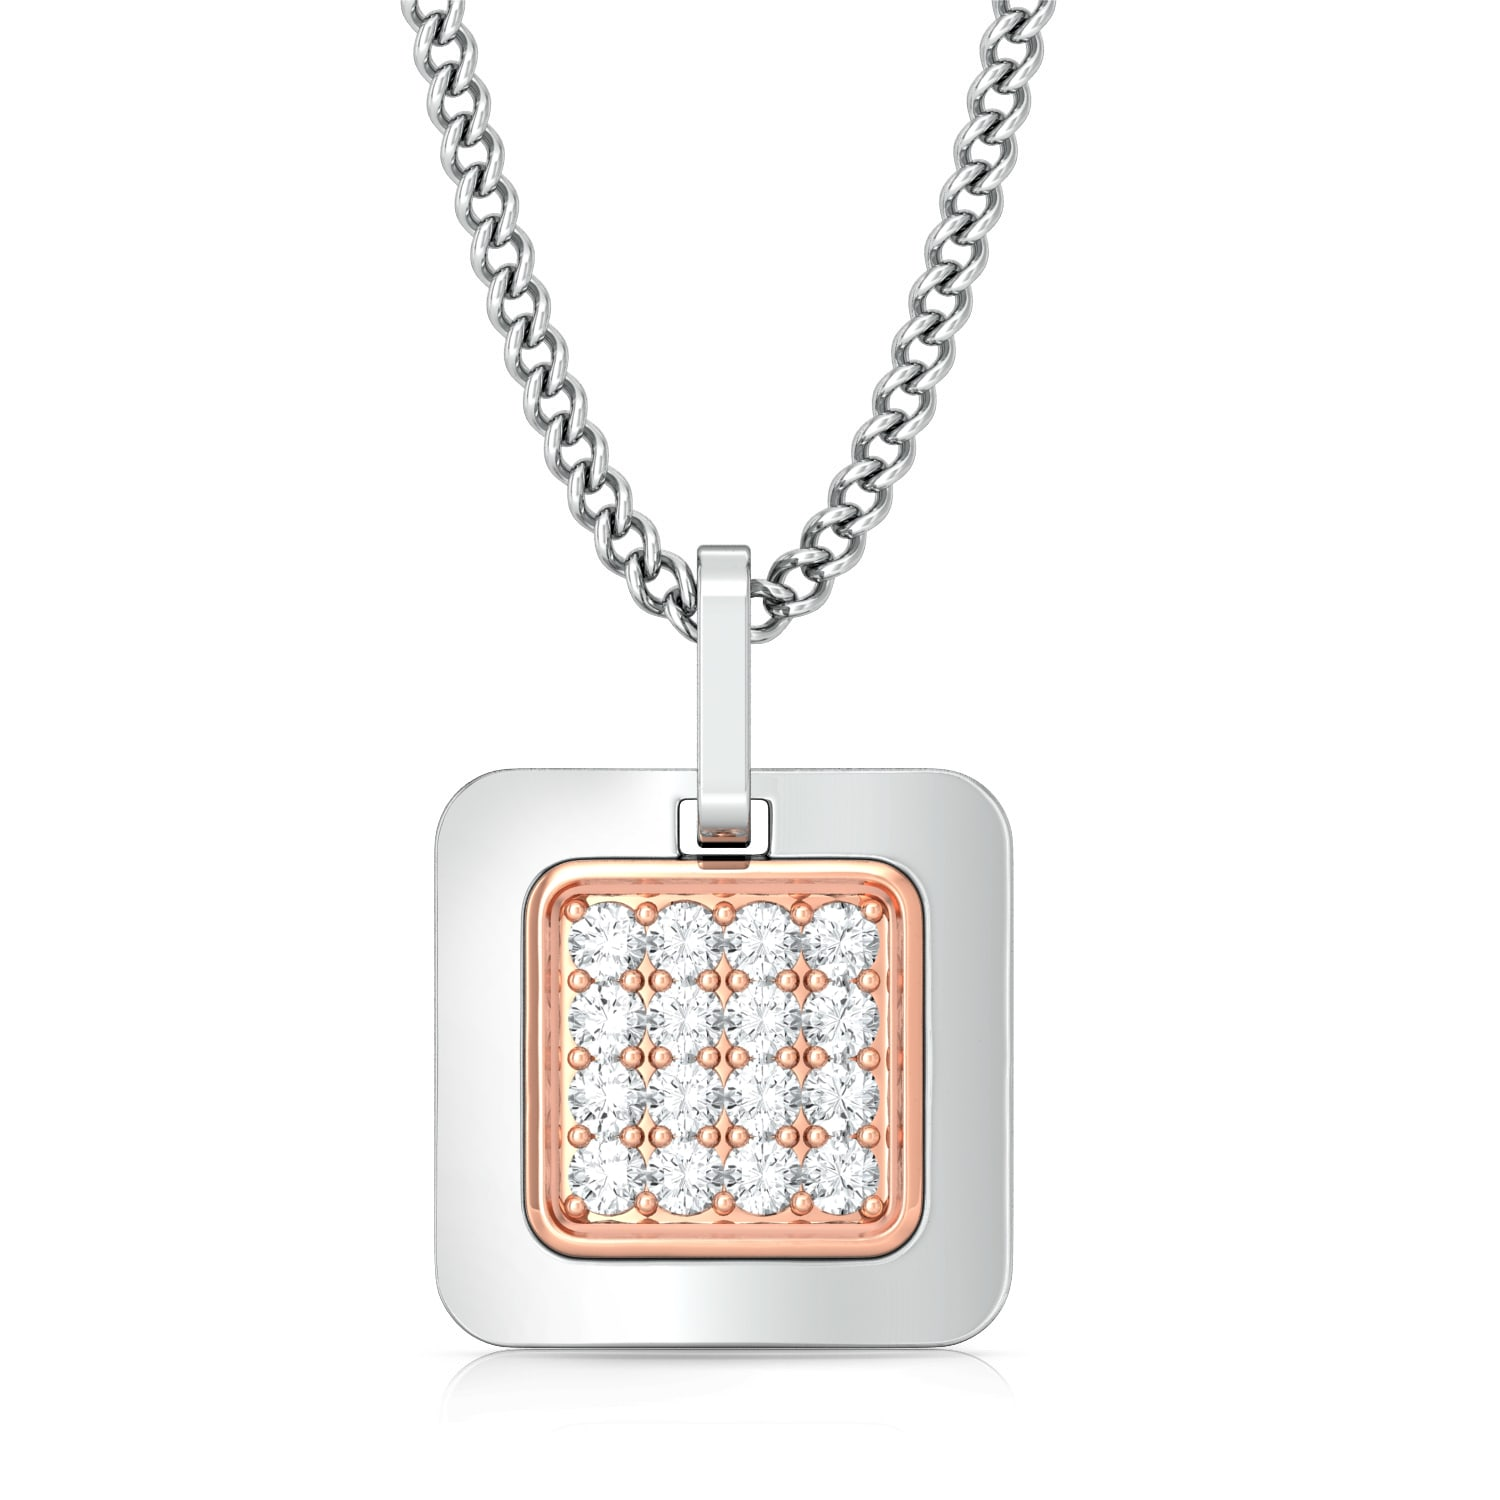 Lasting Impression Diamond Pendants